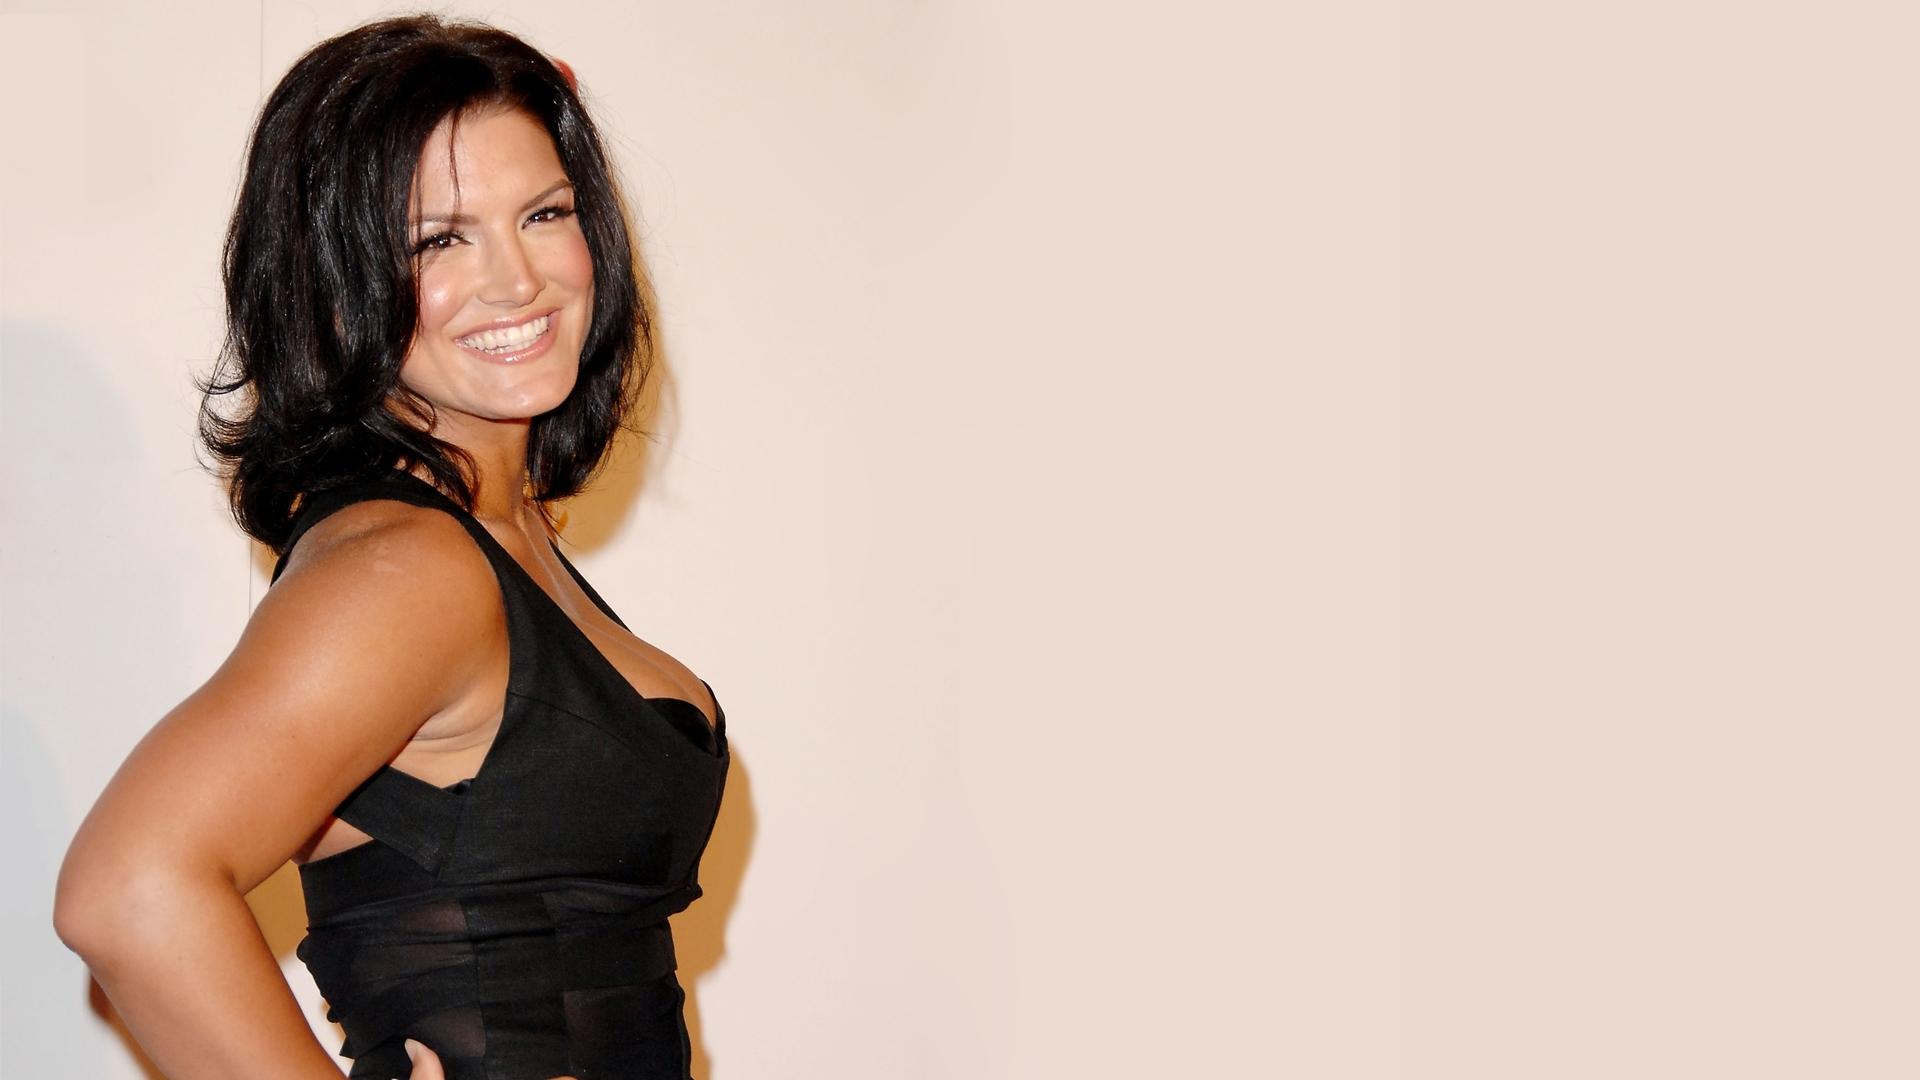 gina carano smile wallpaper 53291 1920x1080 px ~ hdwallsource